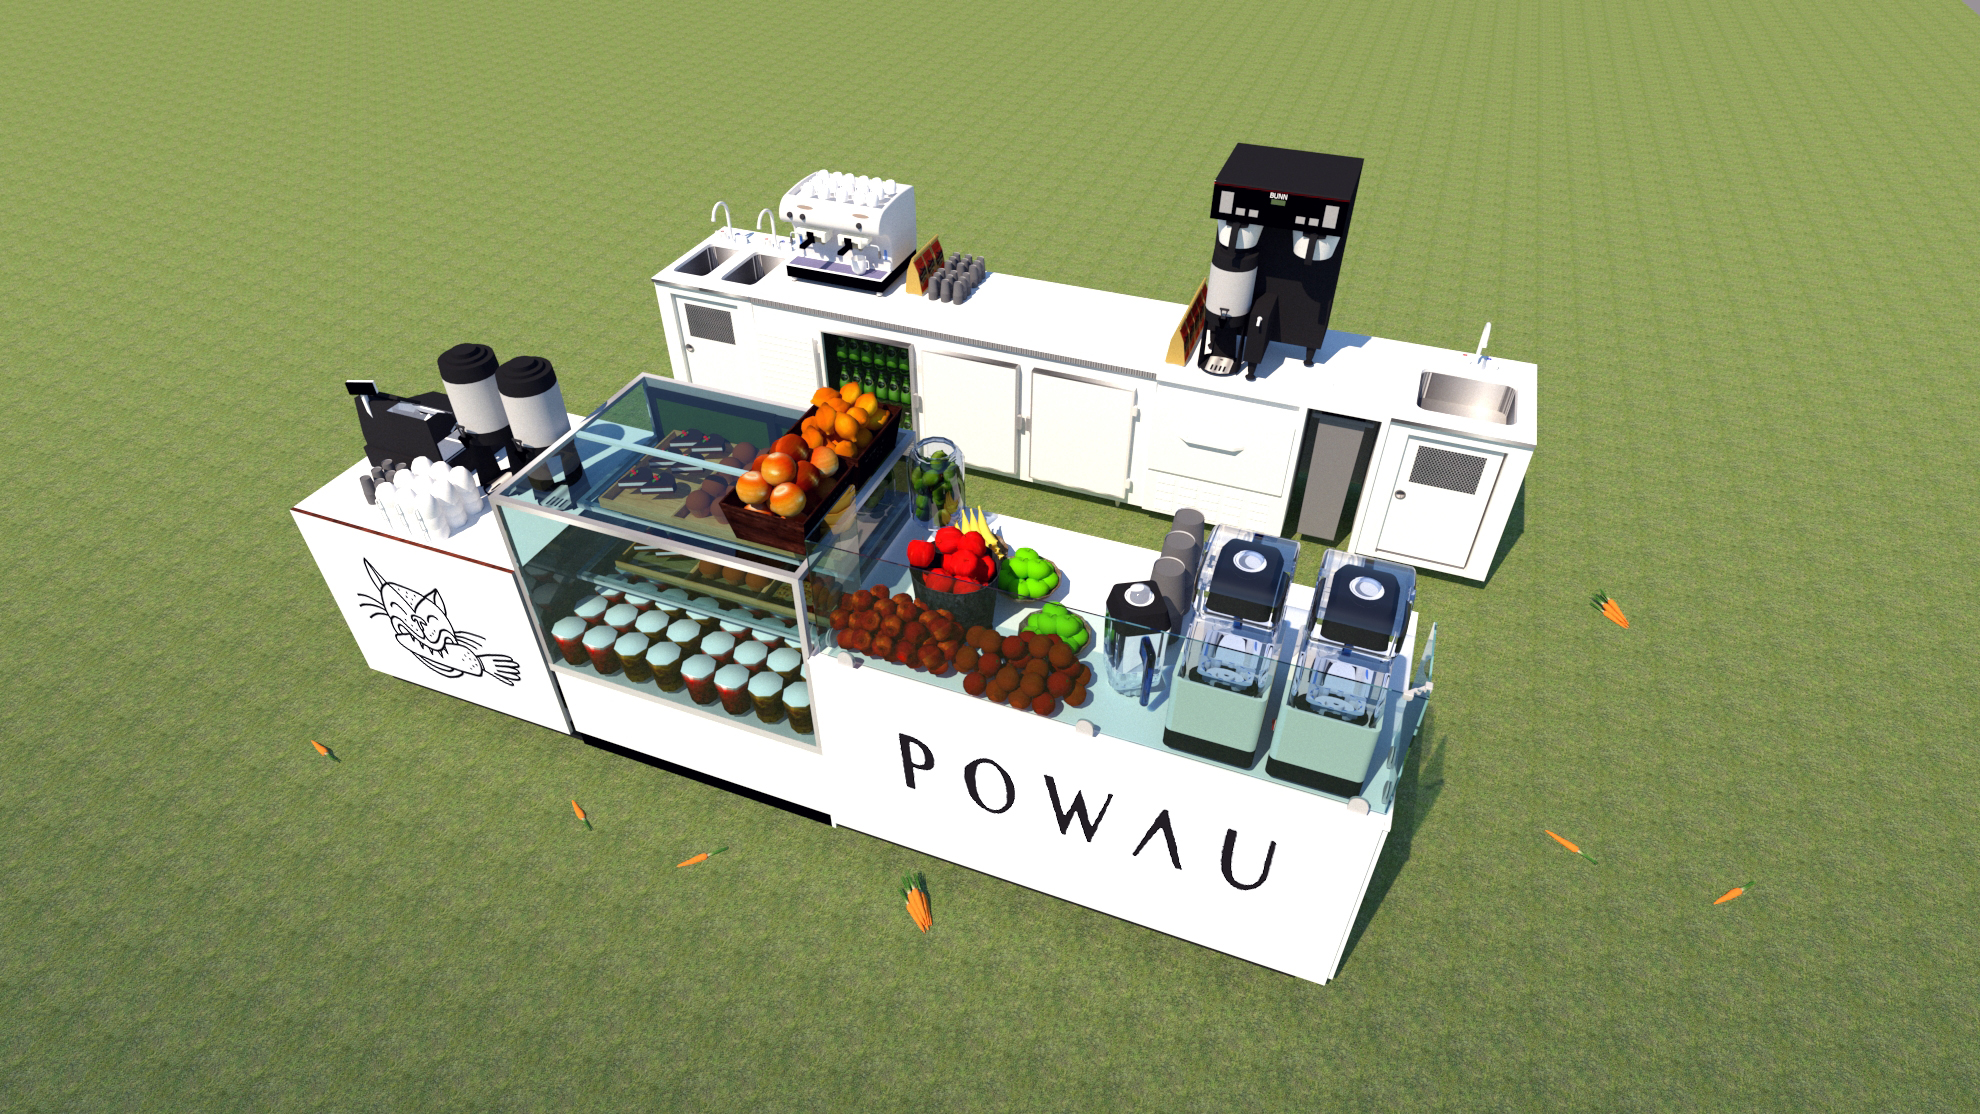 image of POWAU modulbar